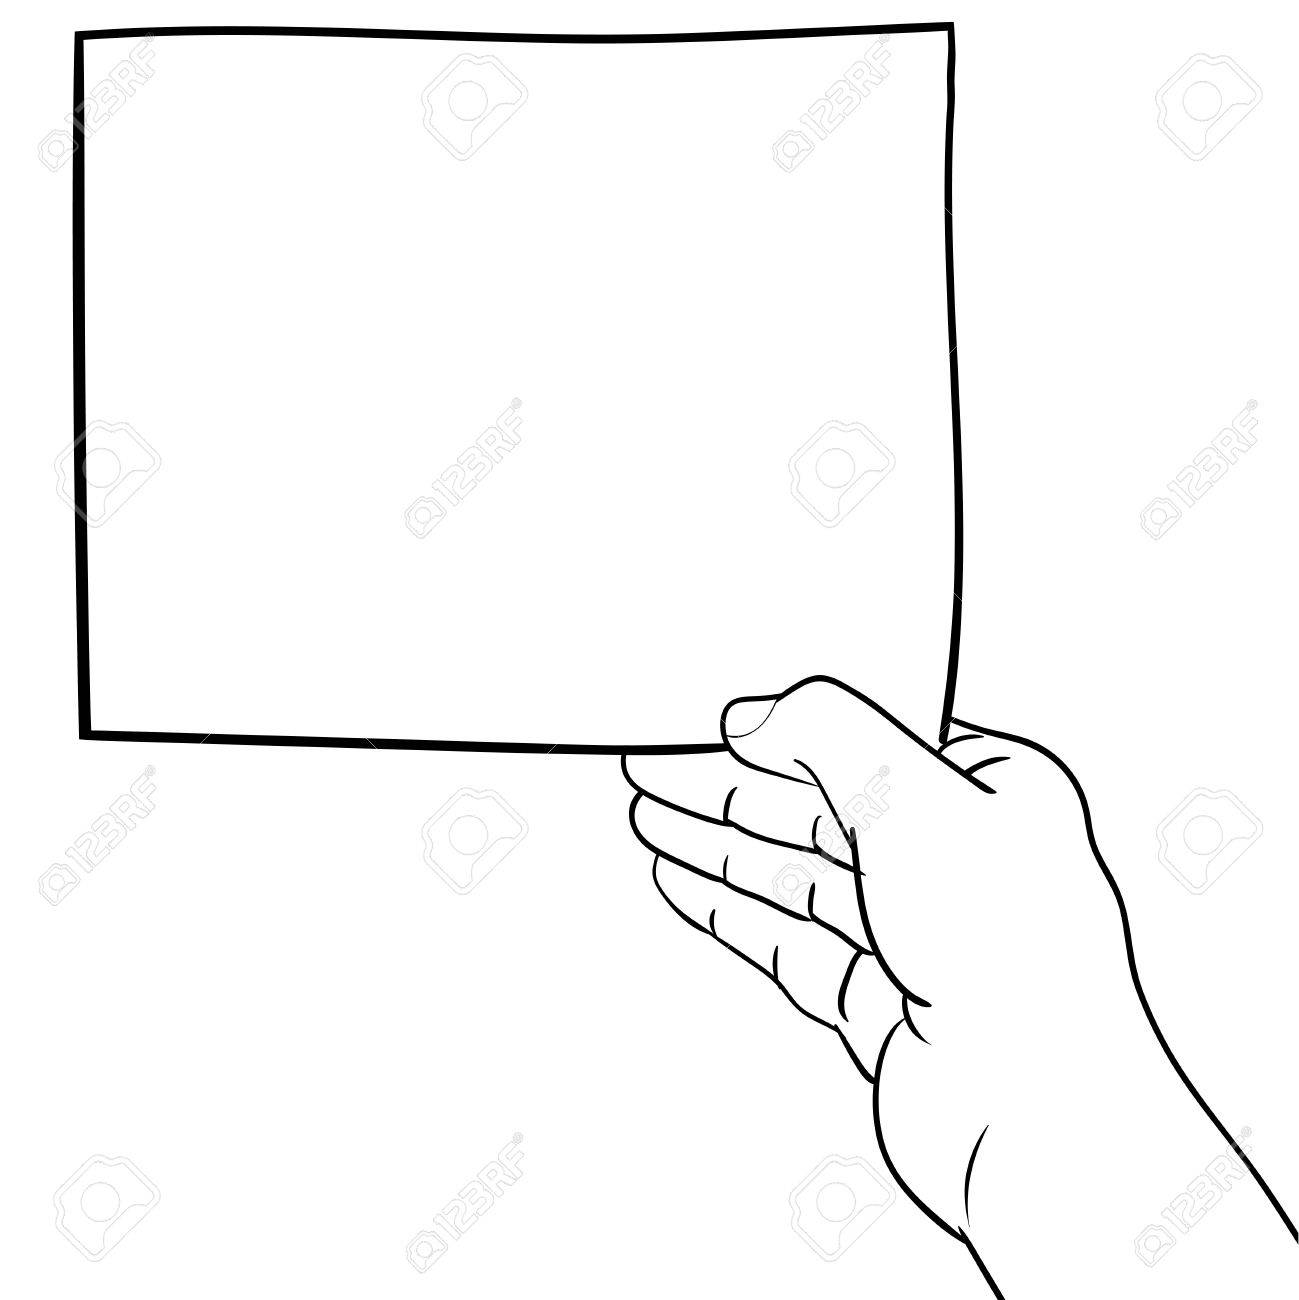 1299x1300 Hand Drawn Sketch Of Hand Holding Blank Paper, Black And White